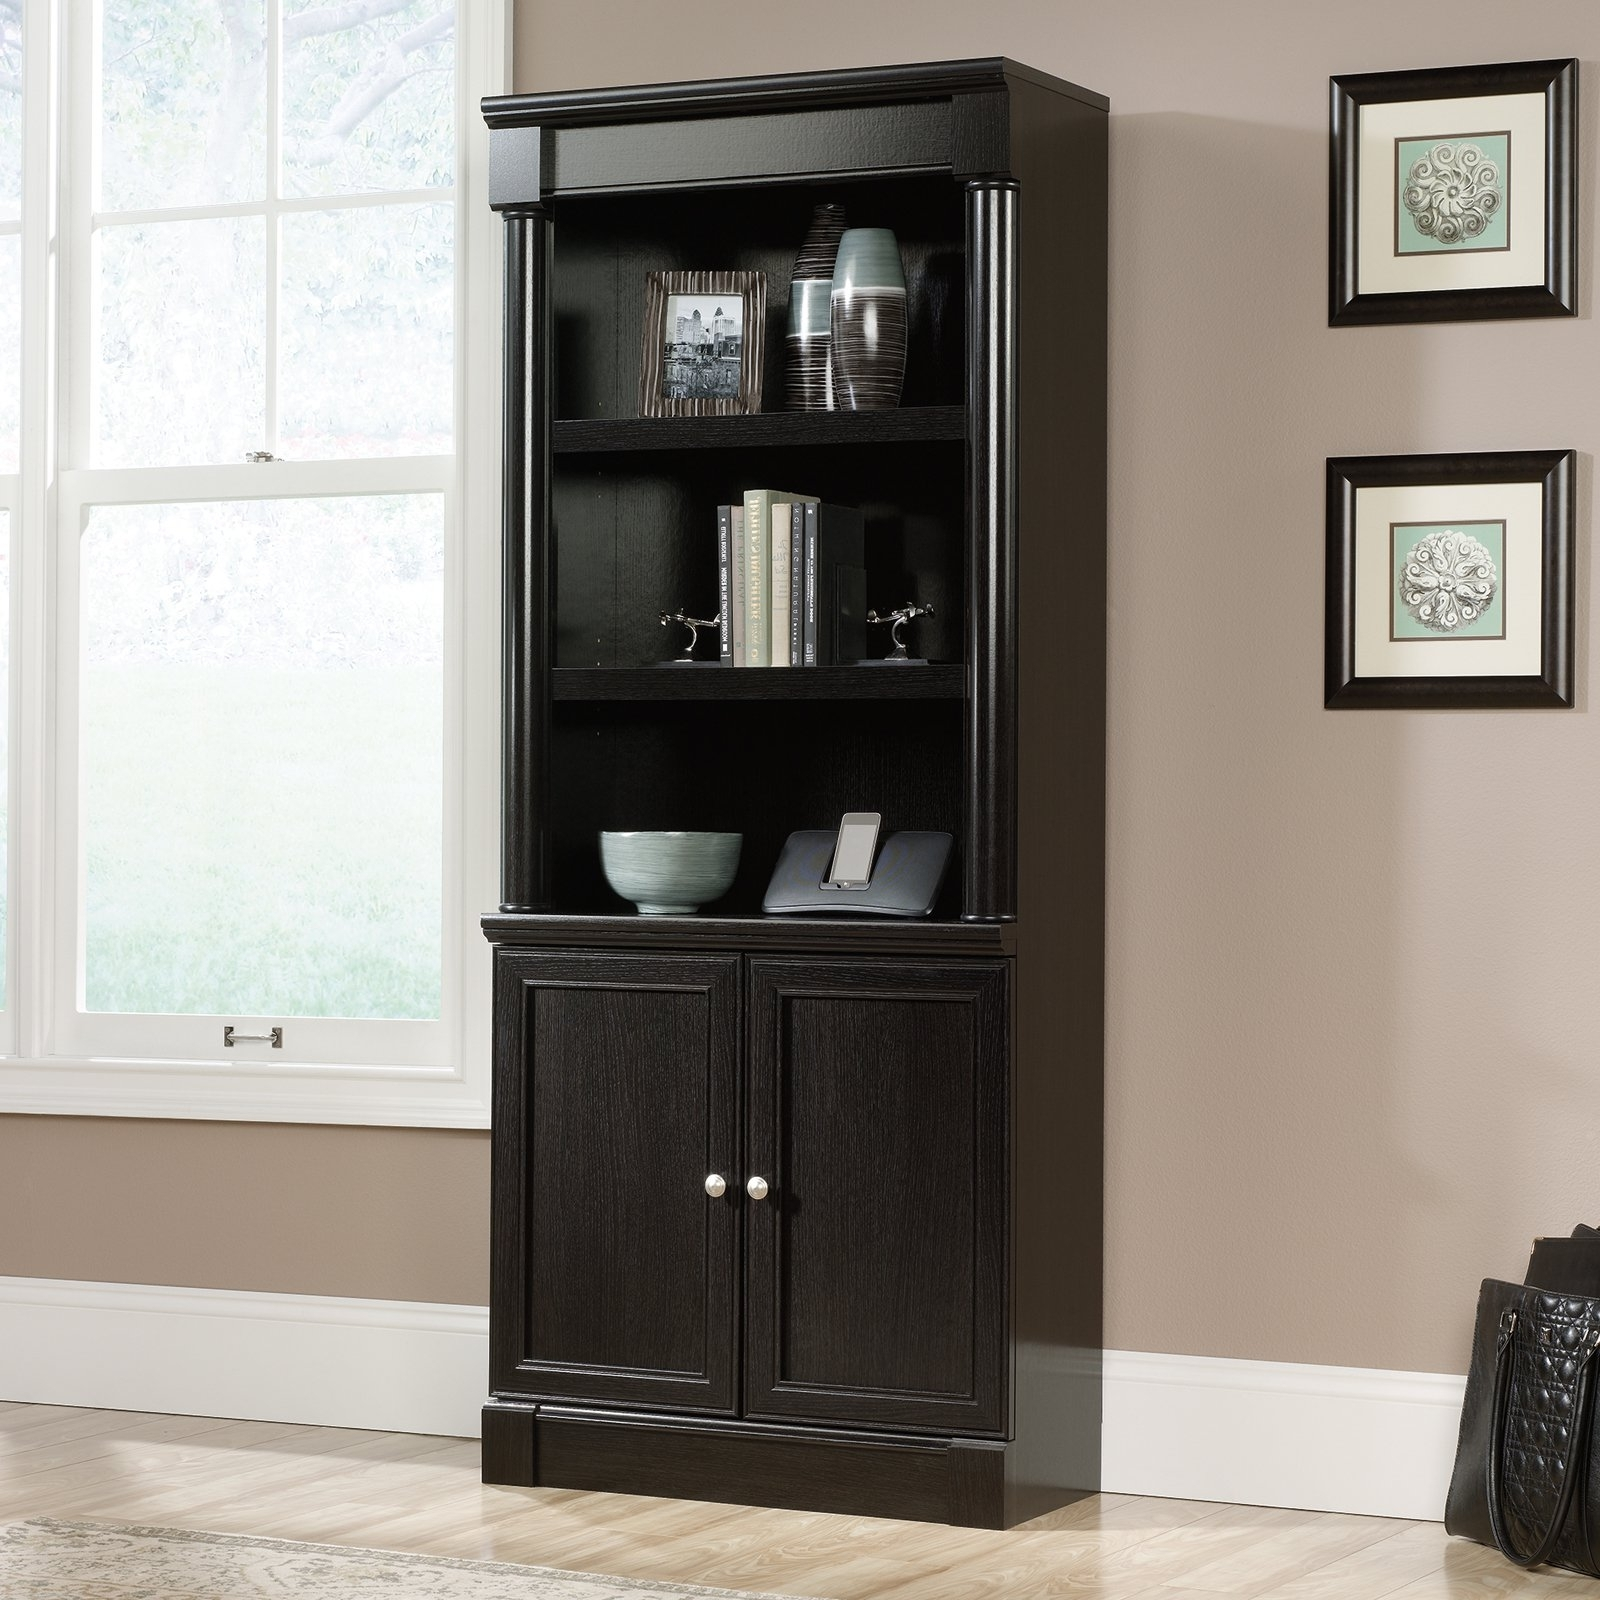 Hayneedle Throughout Black Bookcases With Doors (Gallery 4 of 15)